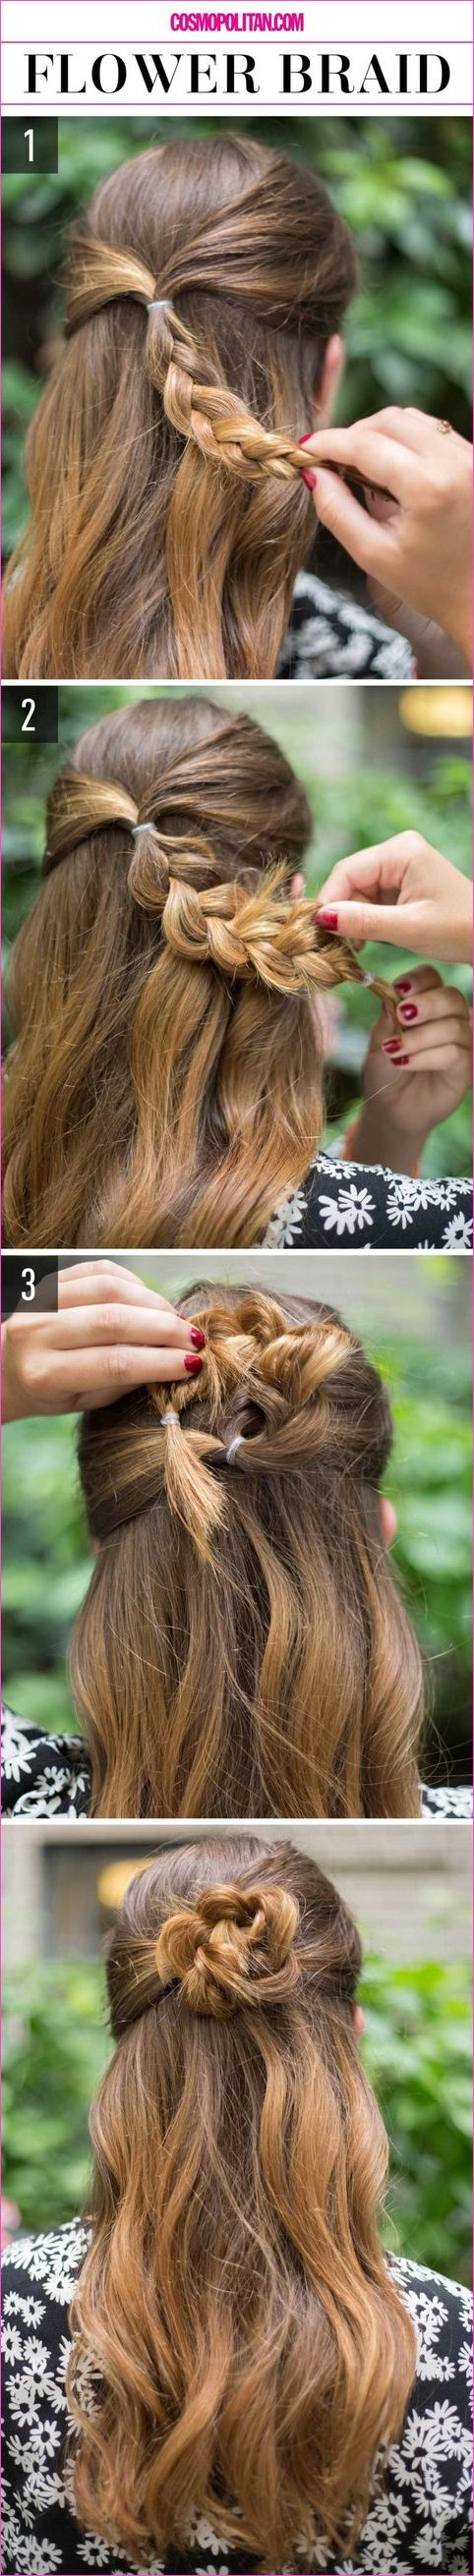 49 Braided Hairstyles That Are Perfect For Prom